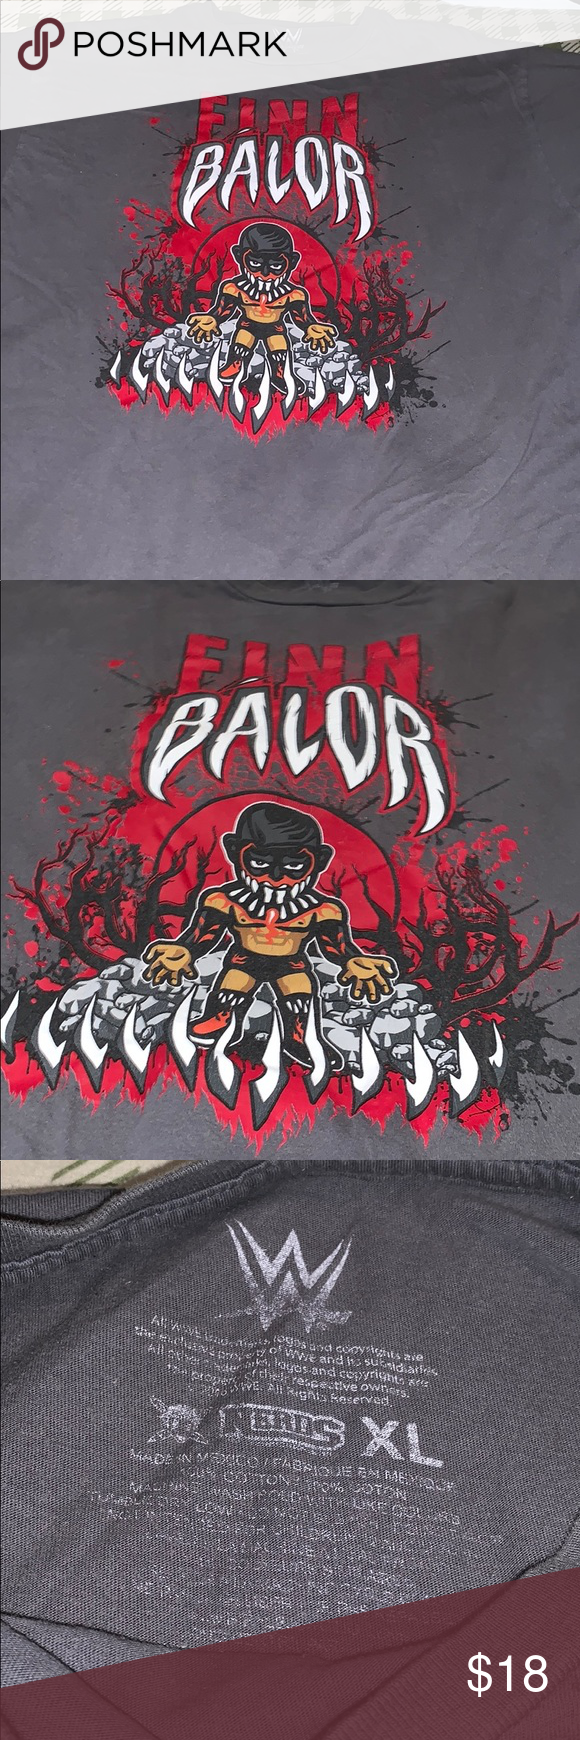 Men's XL WWE Finn Bálor Tee Men's XL WWE Finn Bálor Tee